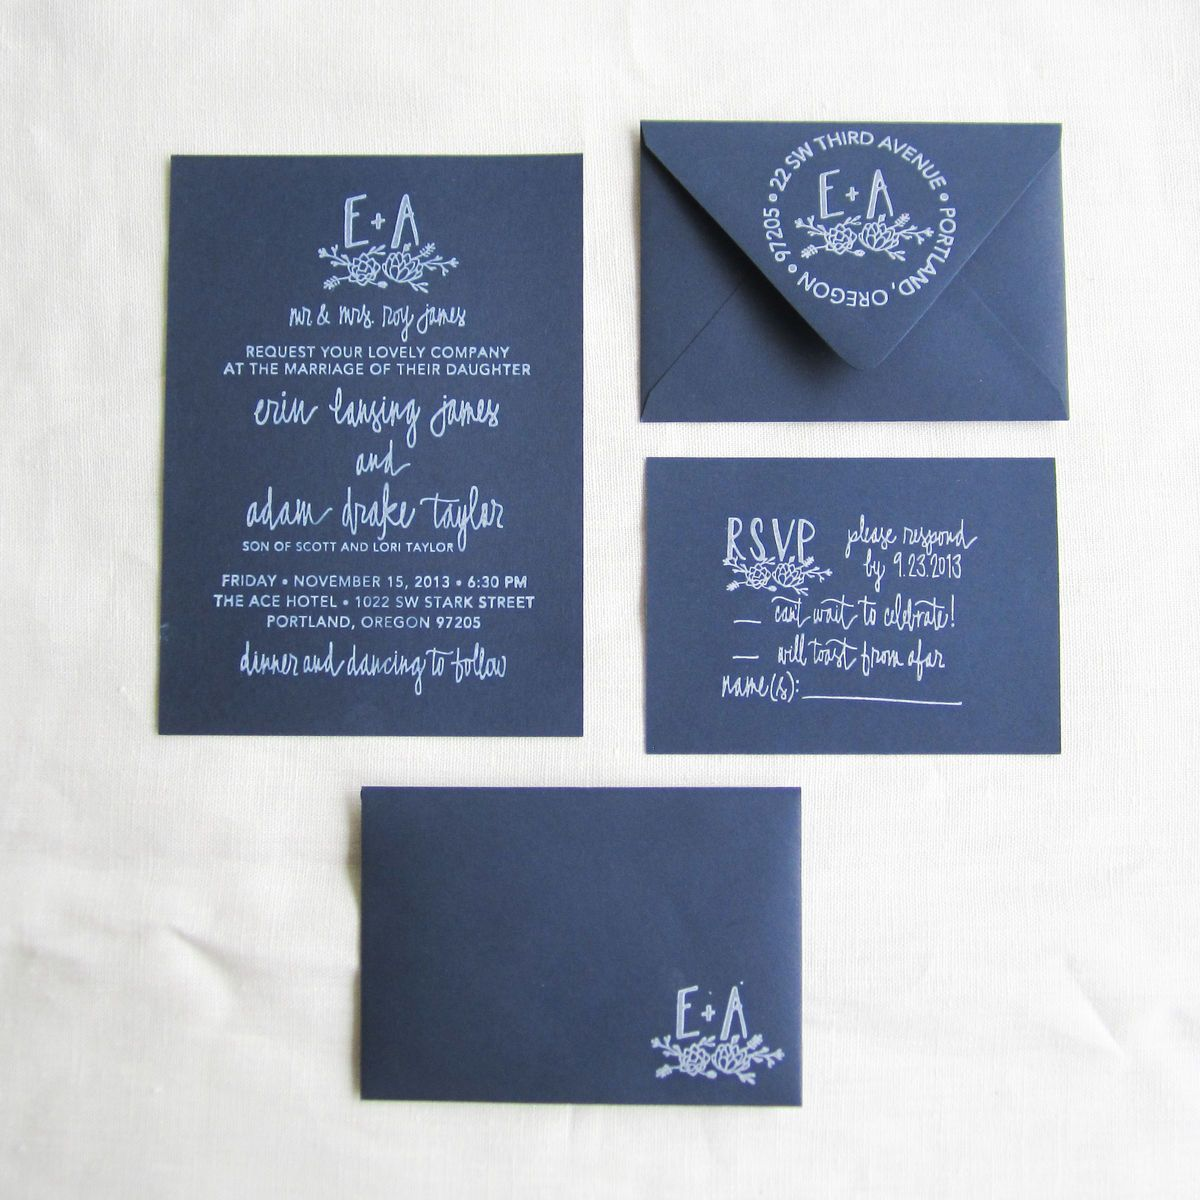 Hand Stamped Invitations 2014 Wedding Stationery Trend Whimsique